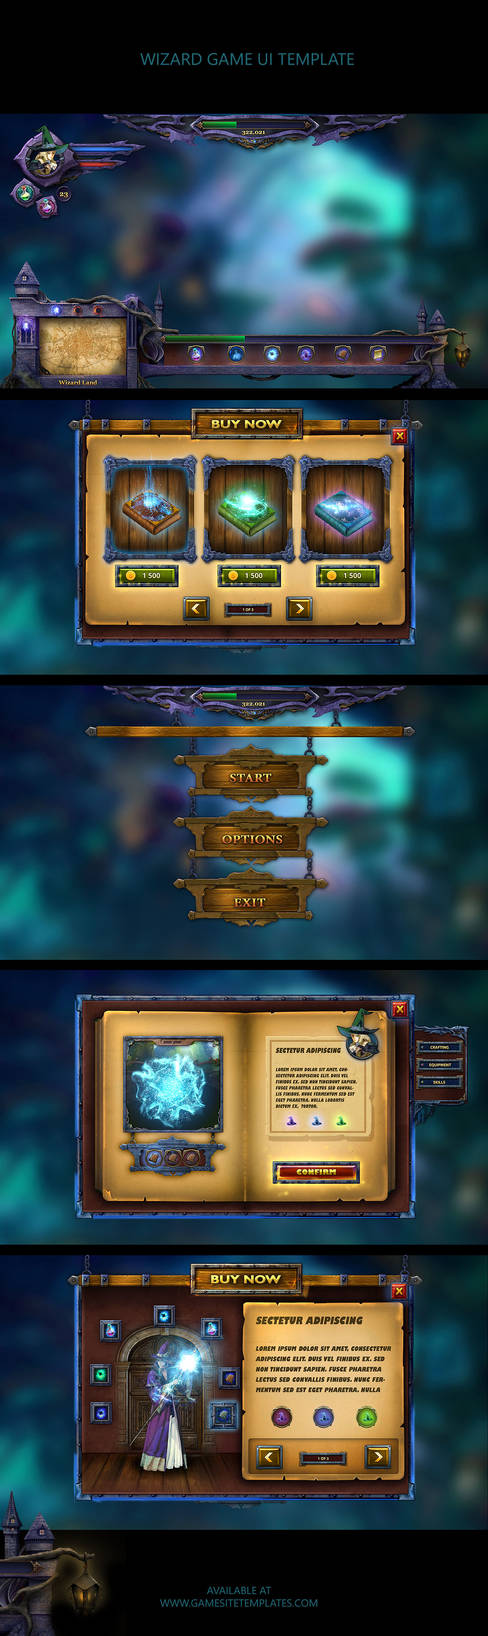 Wizard-magic-mobile-game-ui-template-collage